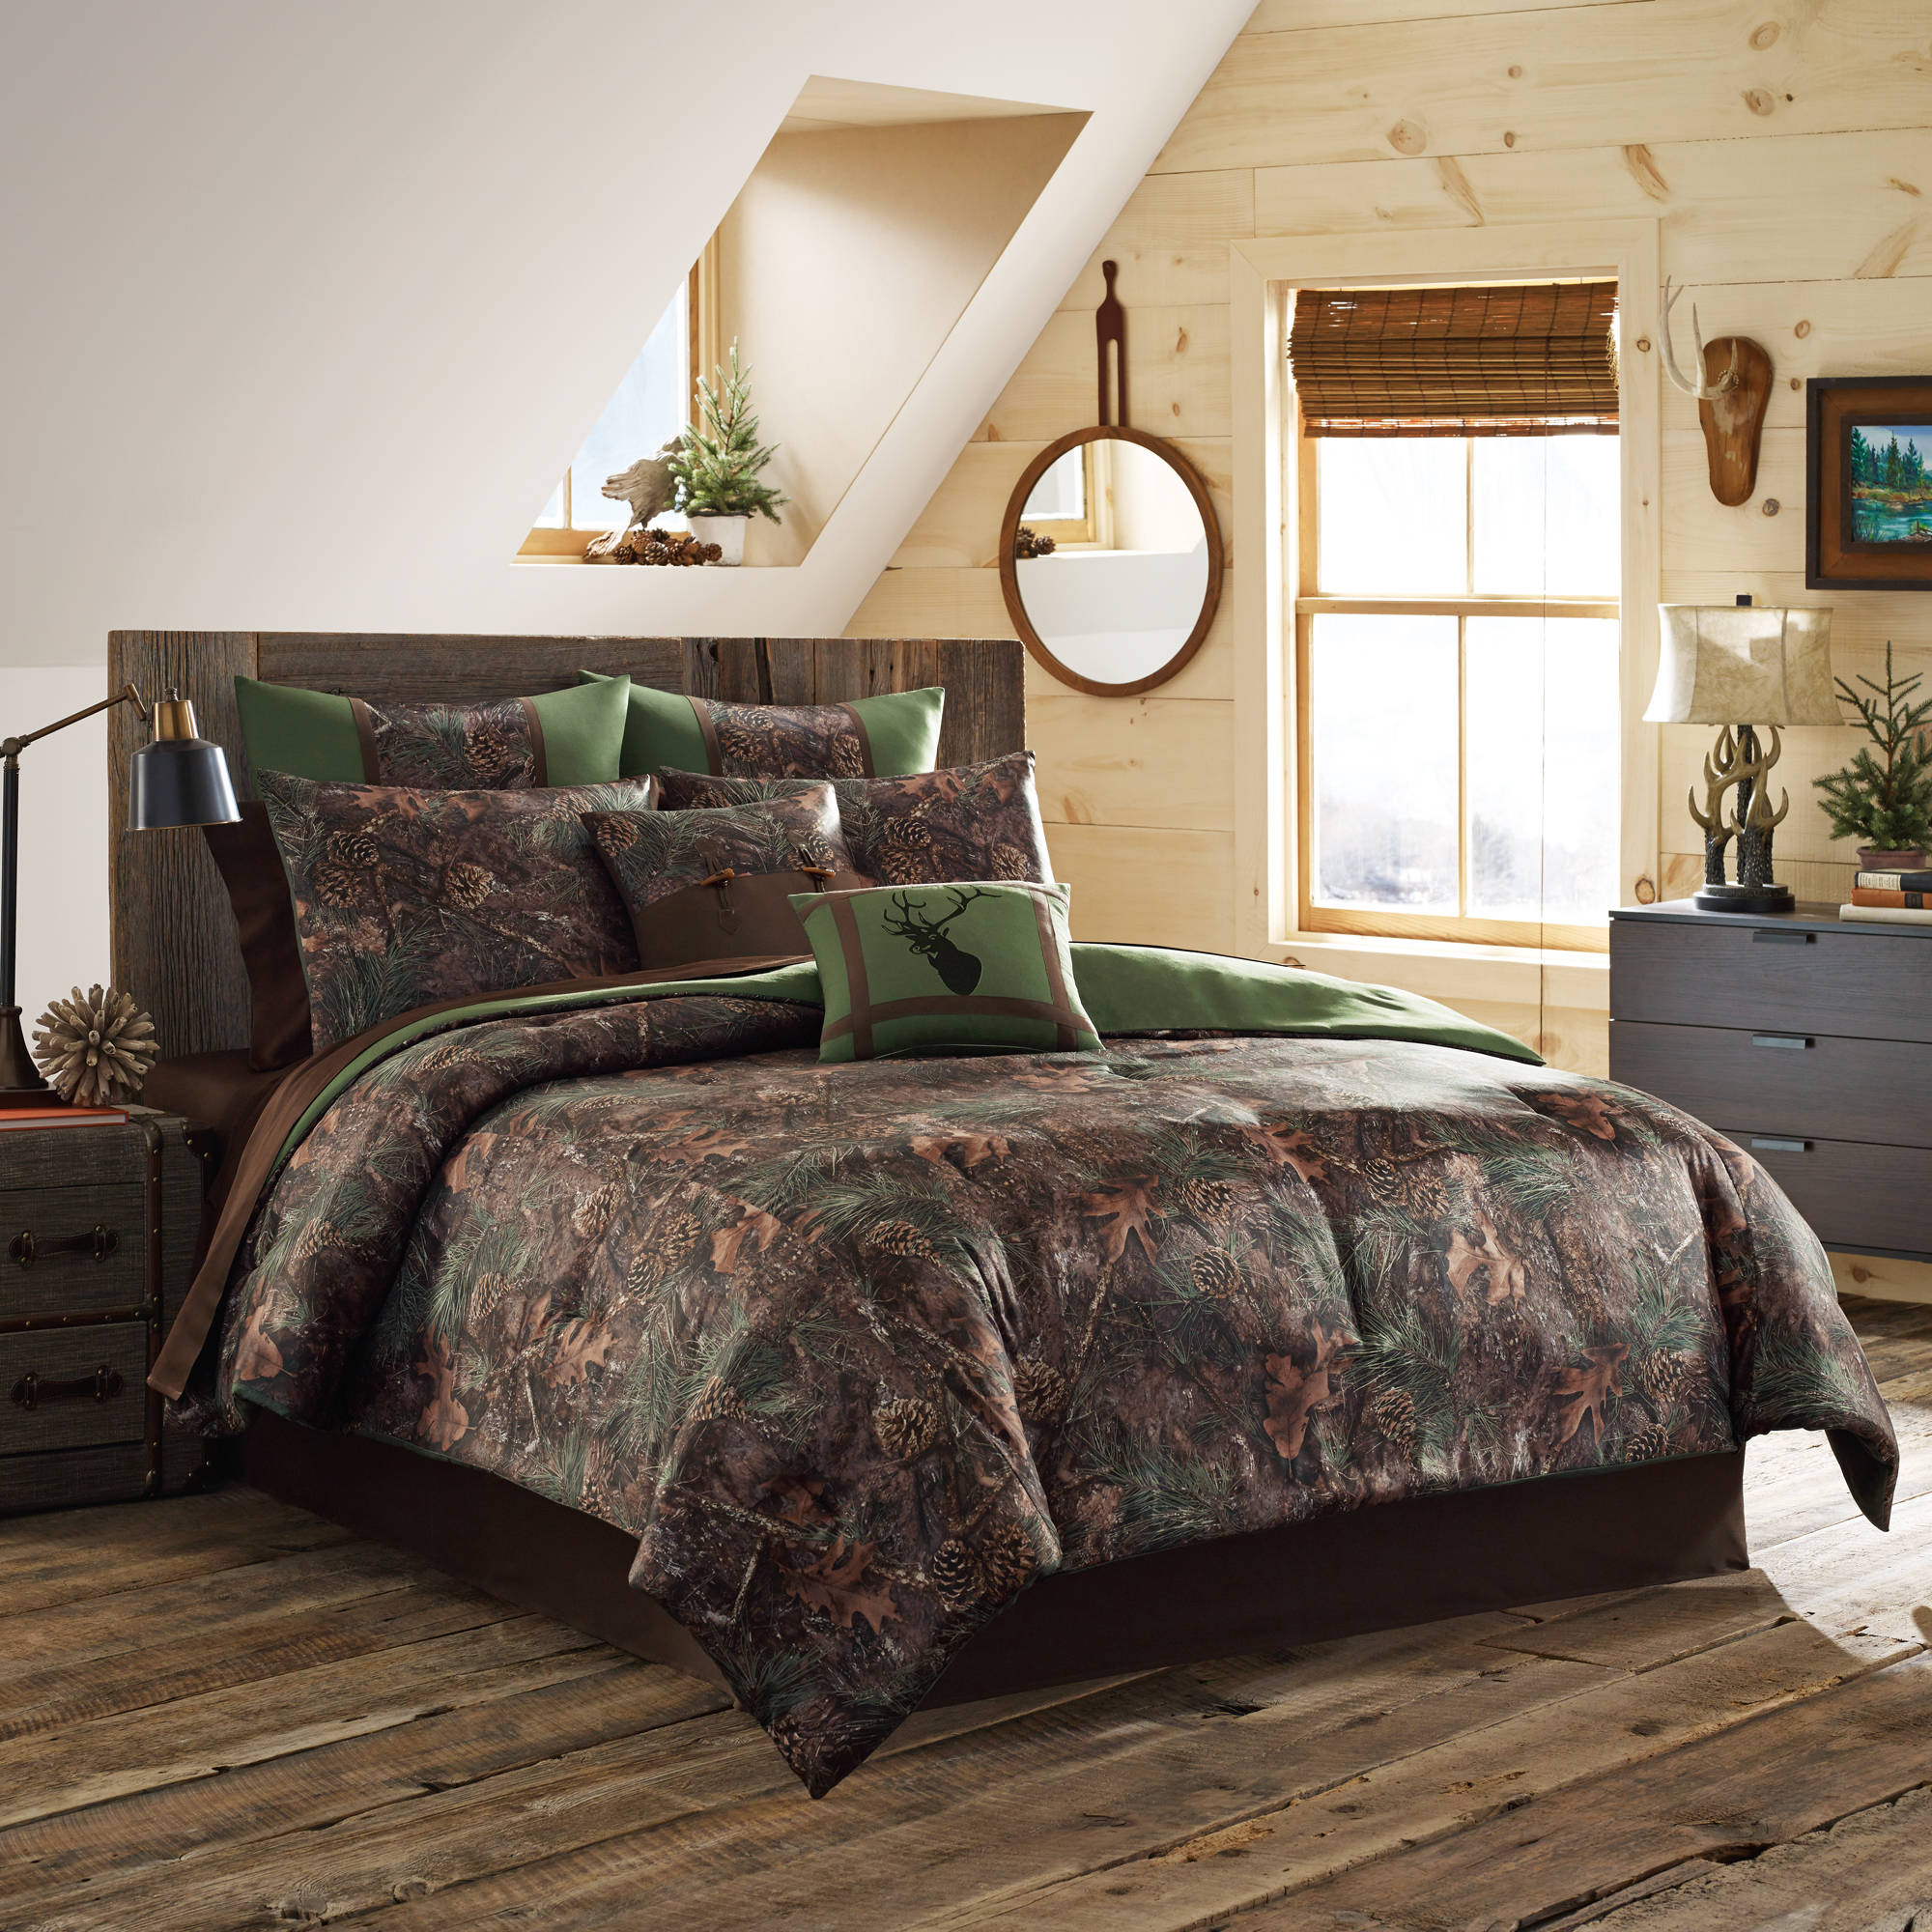 Finest True Timber Mixed Pine Bedding Comforter Set, Green - Walmart.com ML58